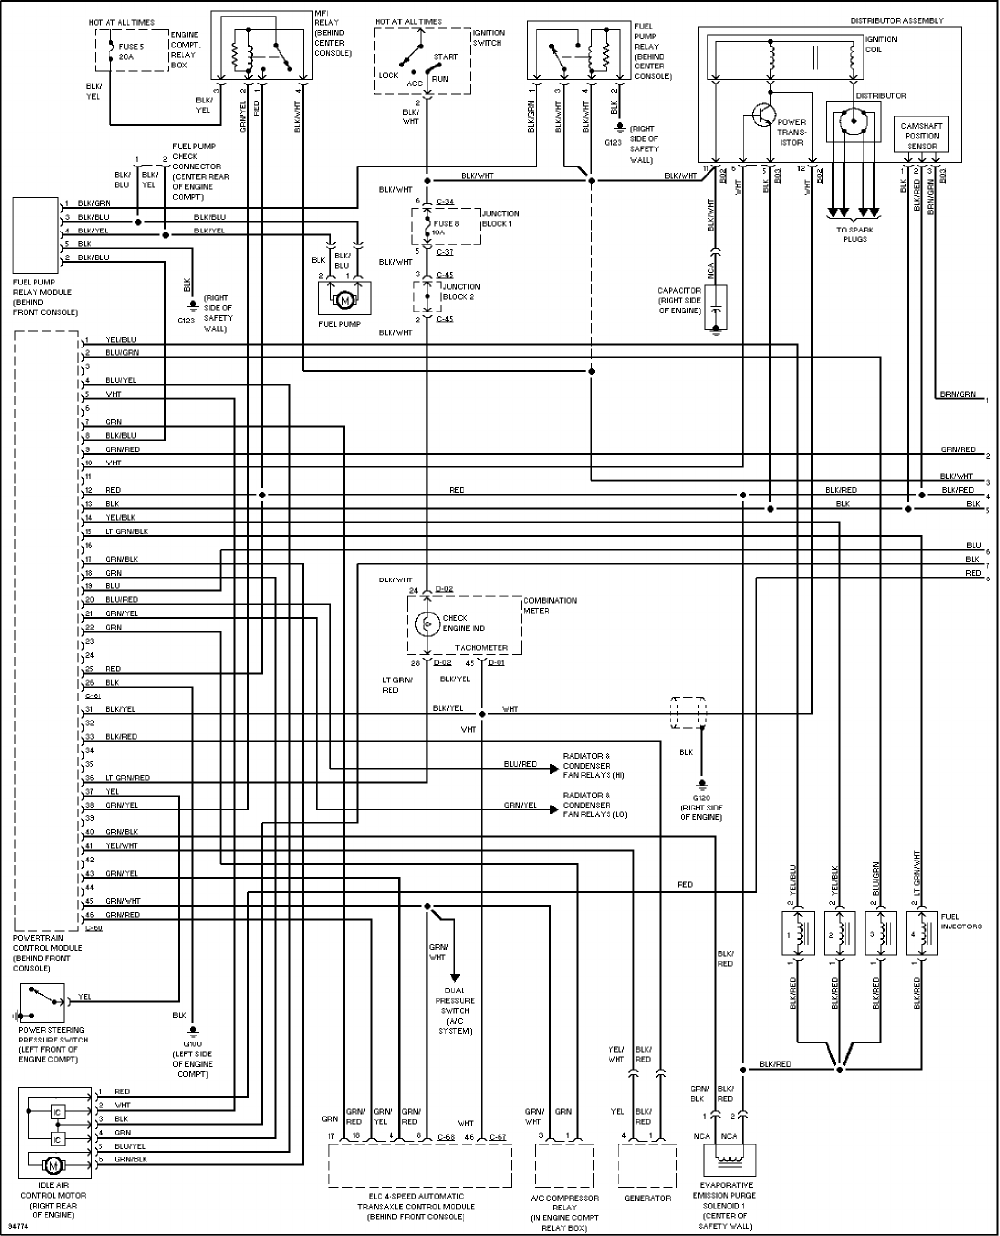 Mitsubishi Galant 1997 Misc. Document Electrical Wiring PDF